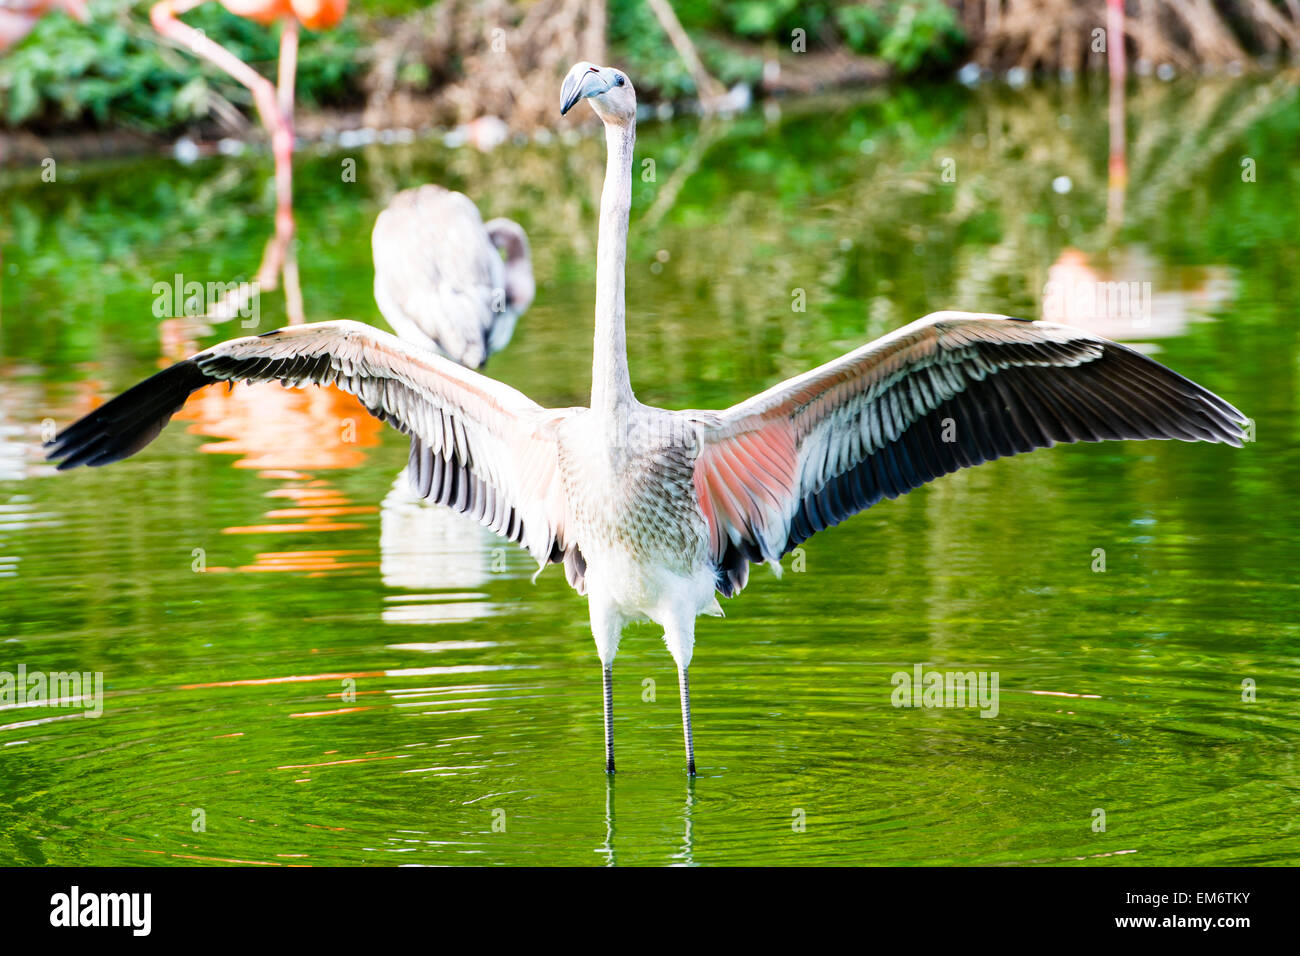 The greater flamingo is found in Africa, Asia, and Europe. Most of the plumage is pinkish-white. Stock Photo